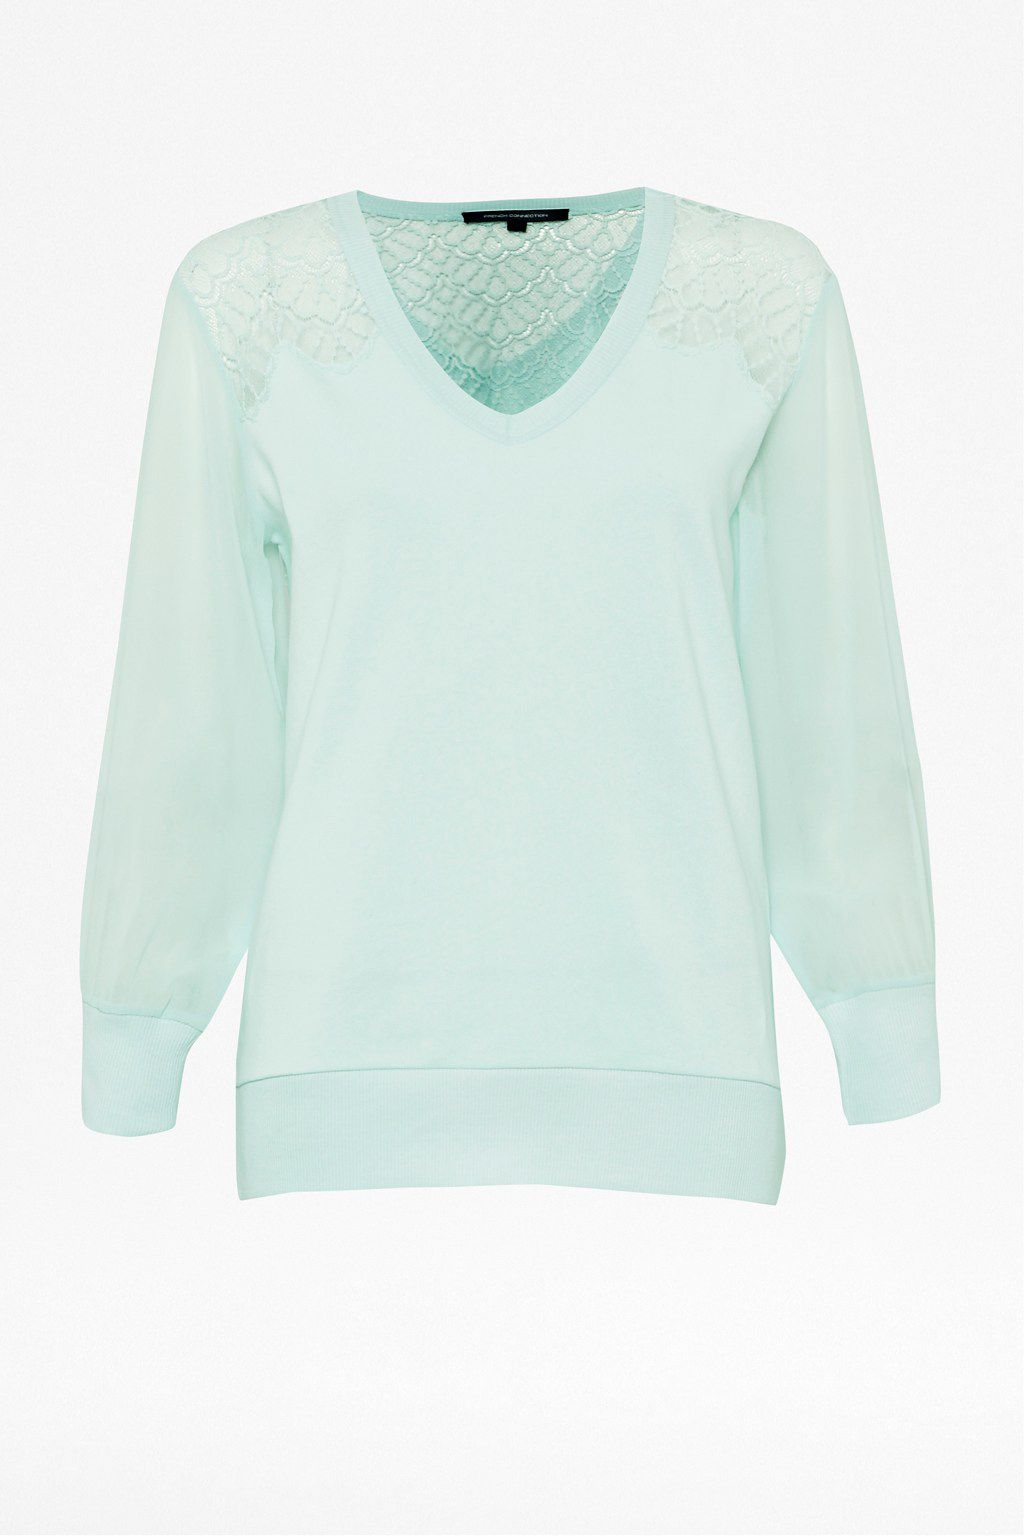 Fast ditton lace sweat